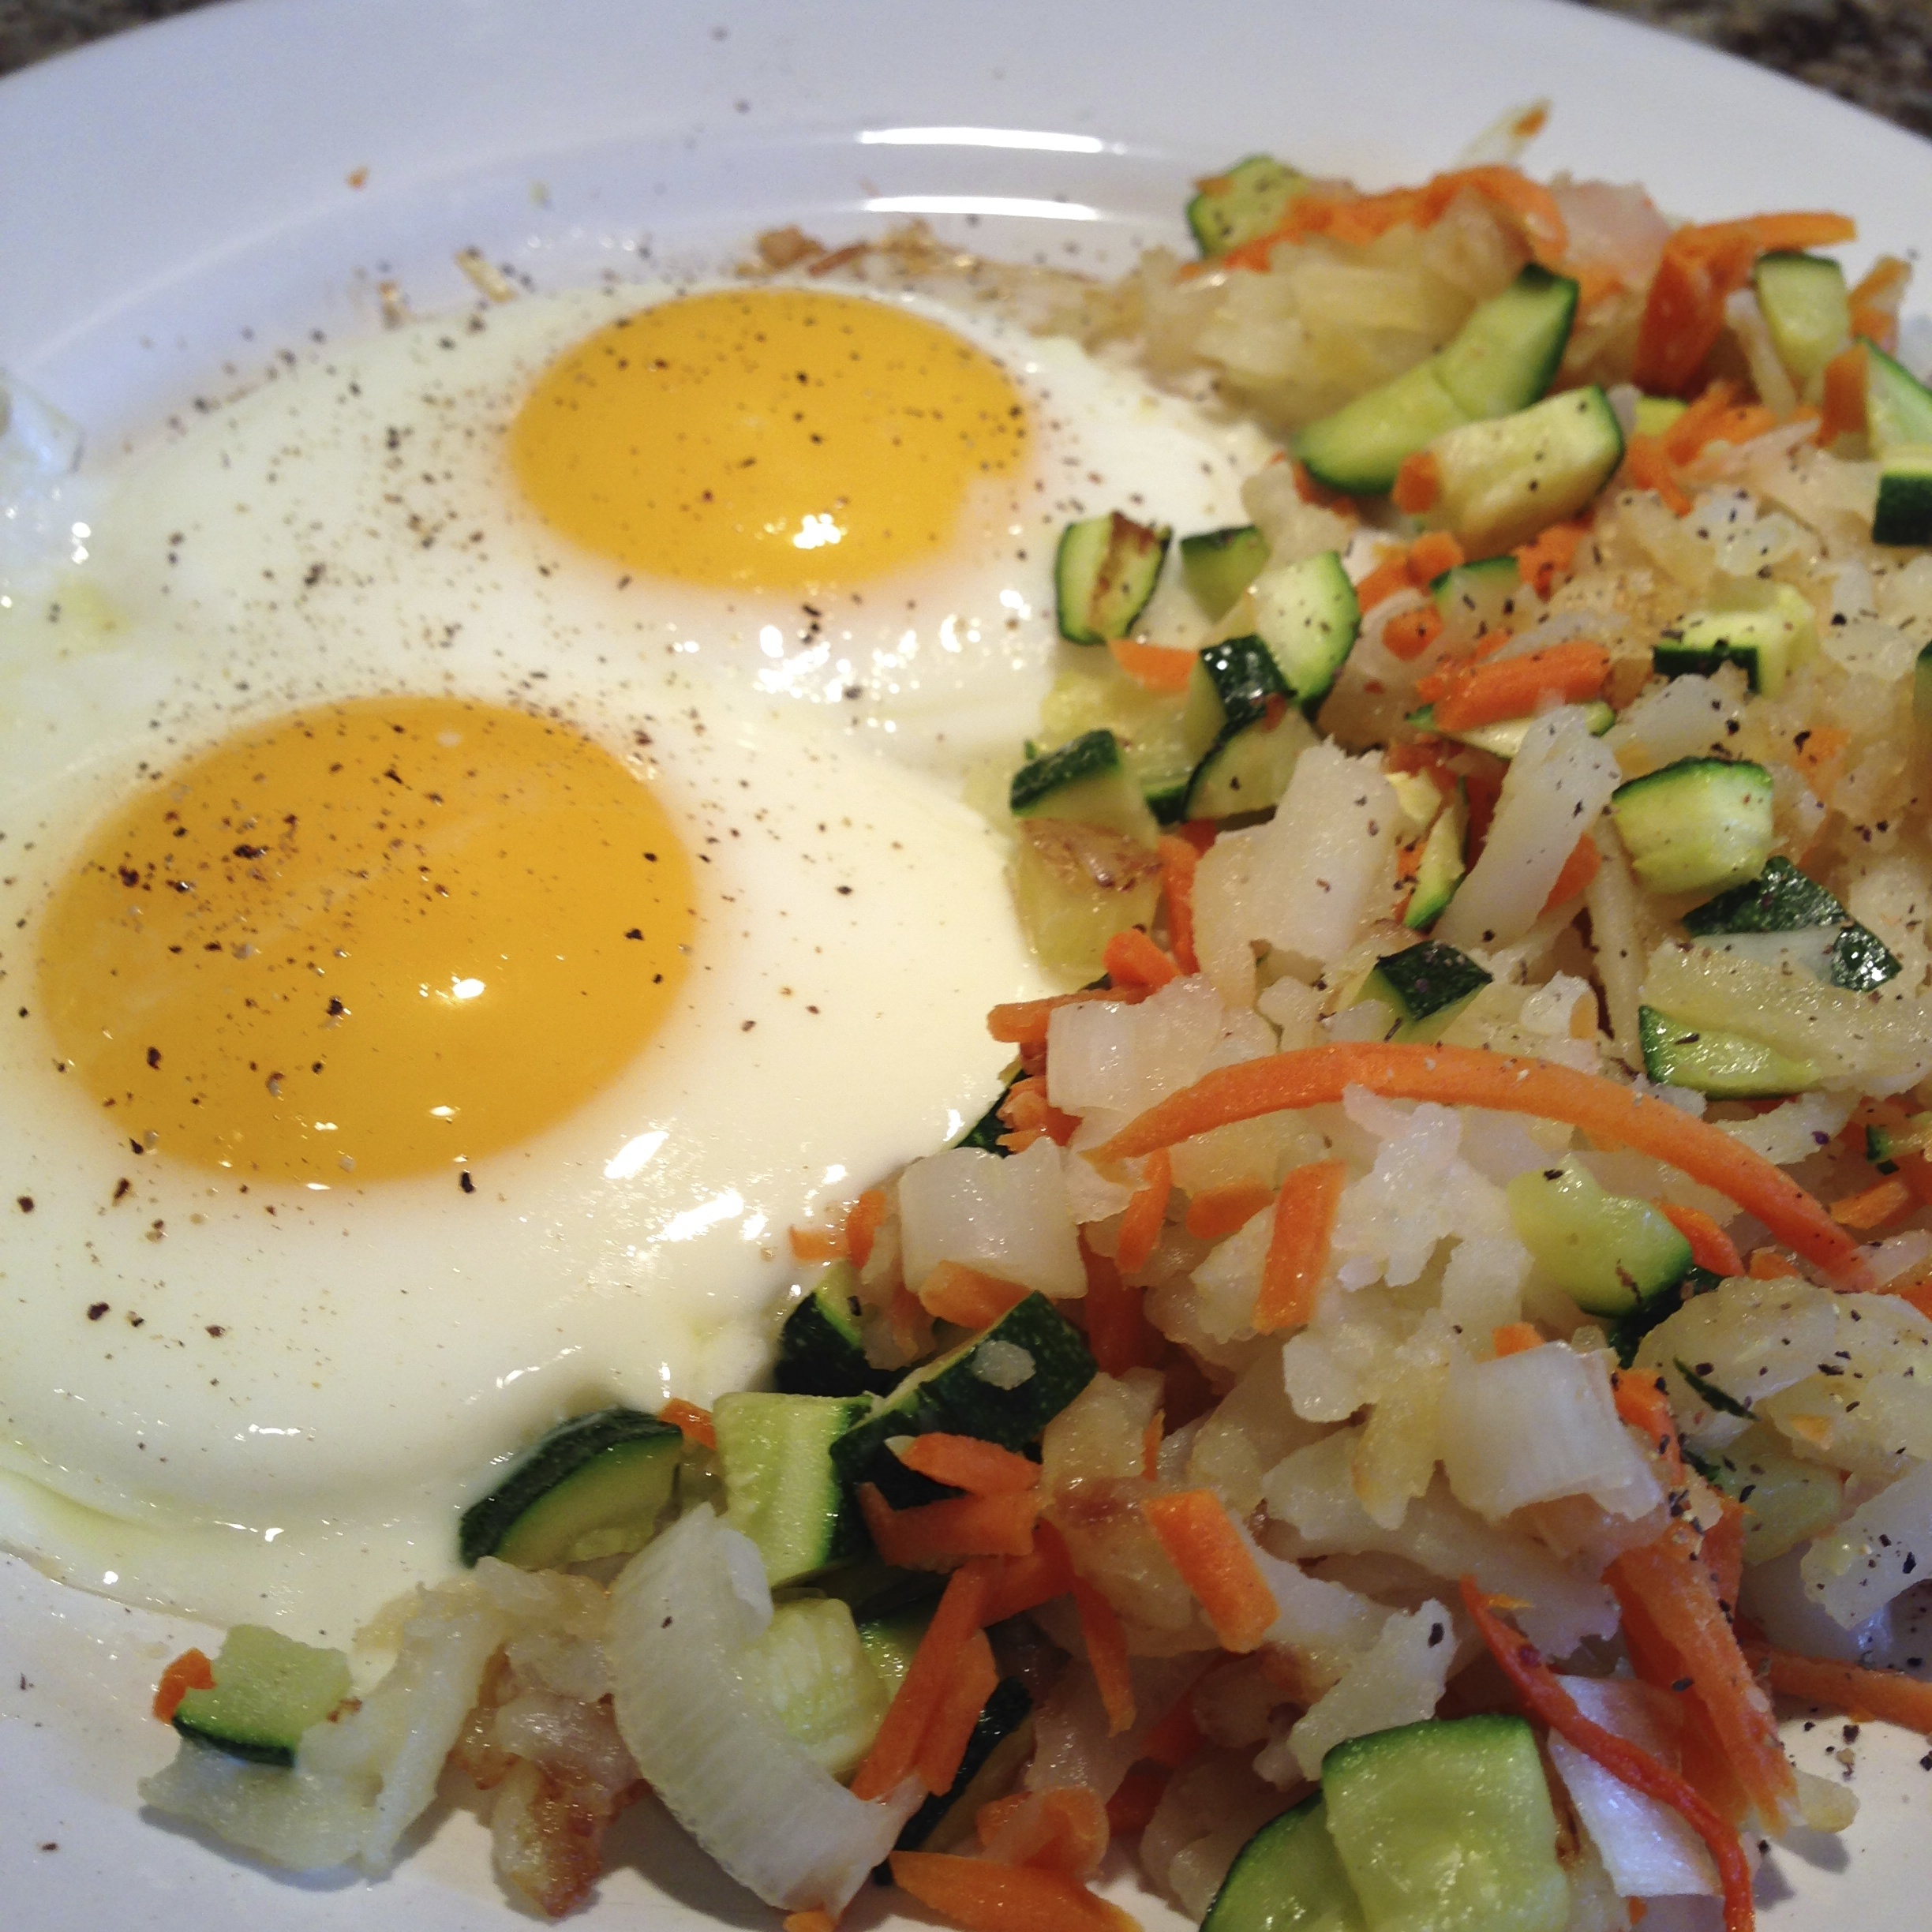 Carrot and Zucchini Hash Browns